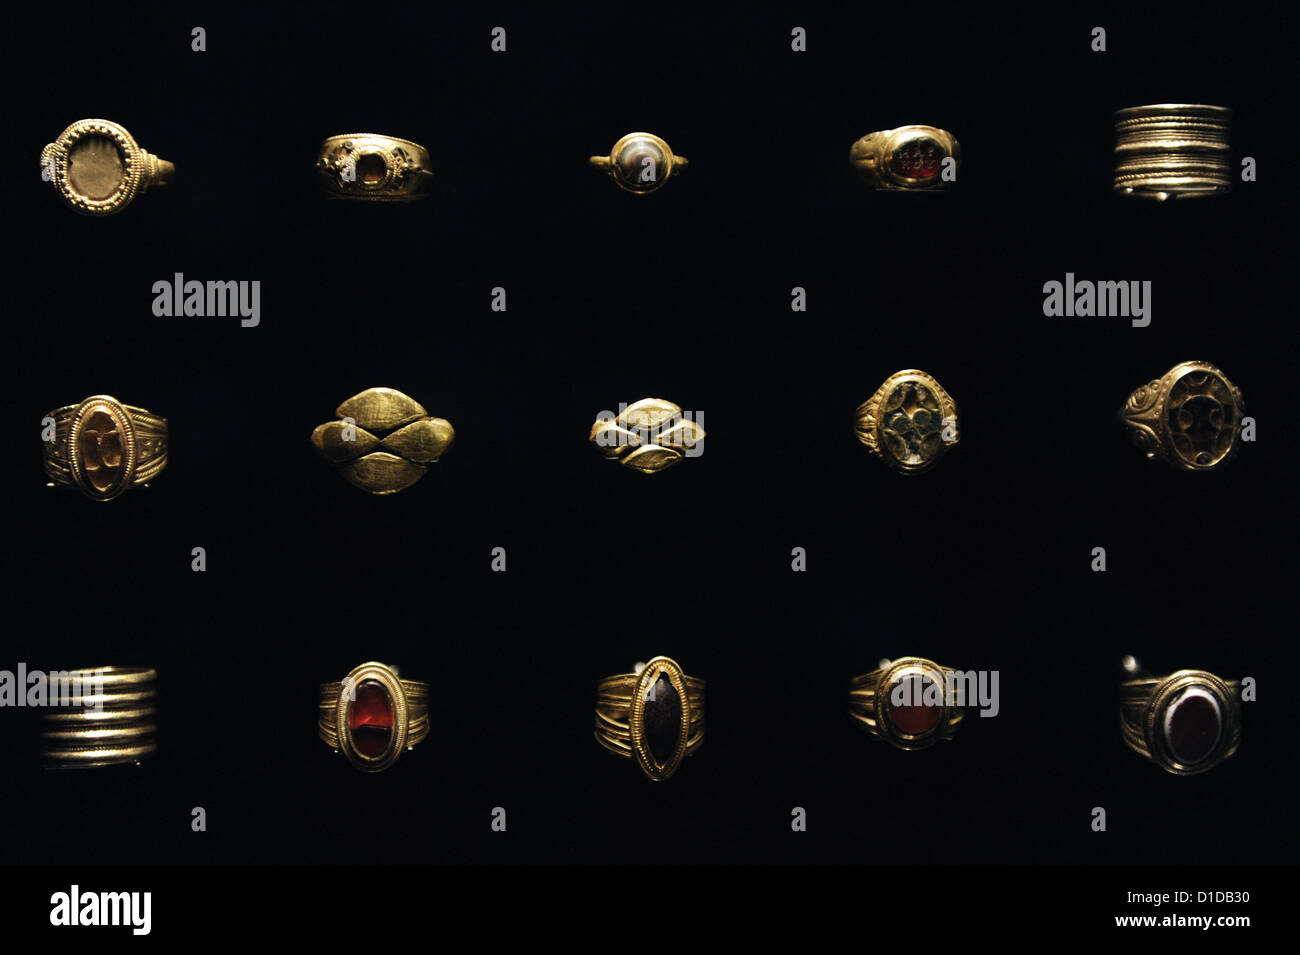 Finger rings from 1st-6th centuries AD. Gold. National Museum of Denmark. - Stock Image